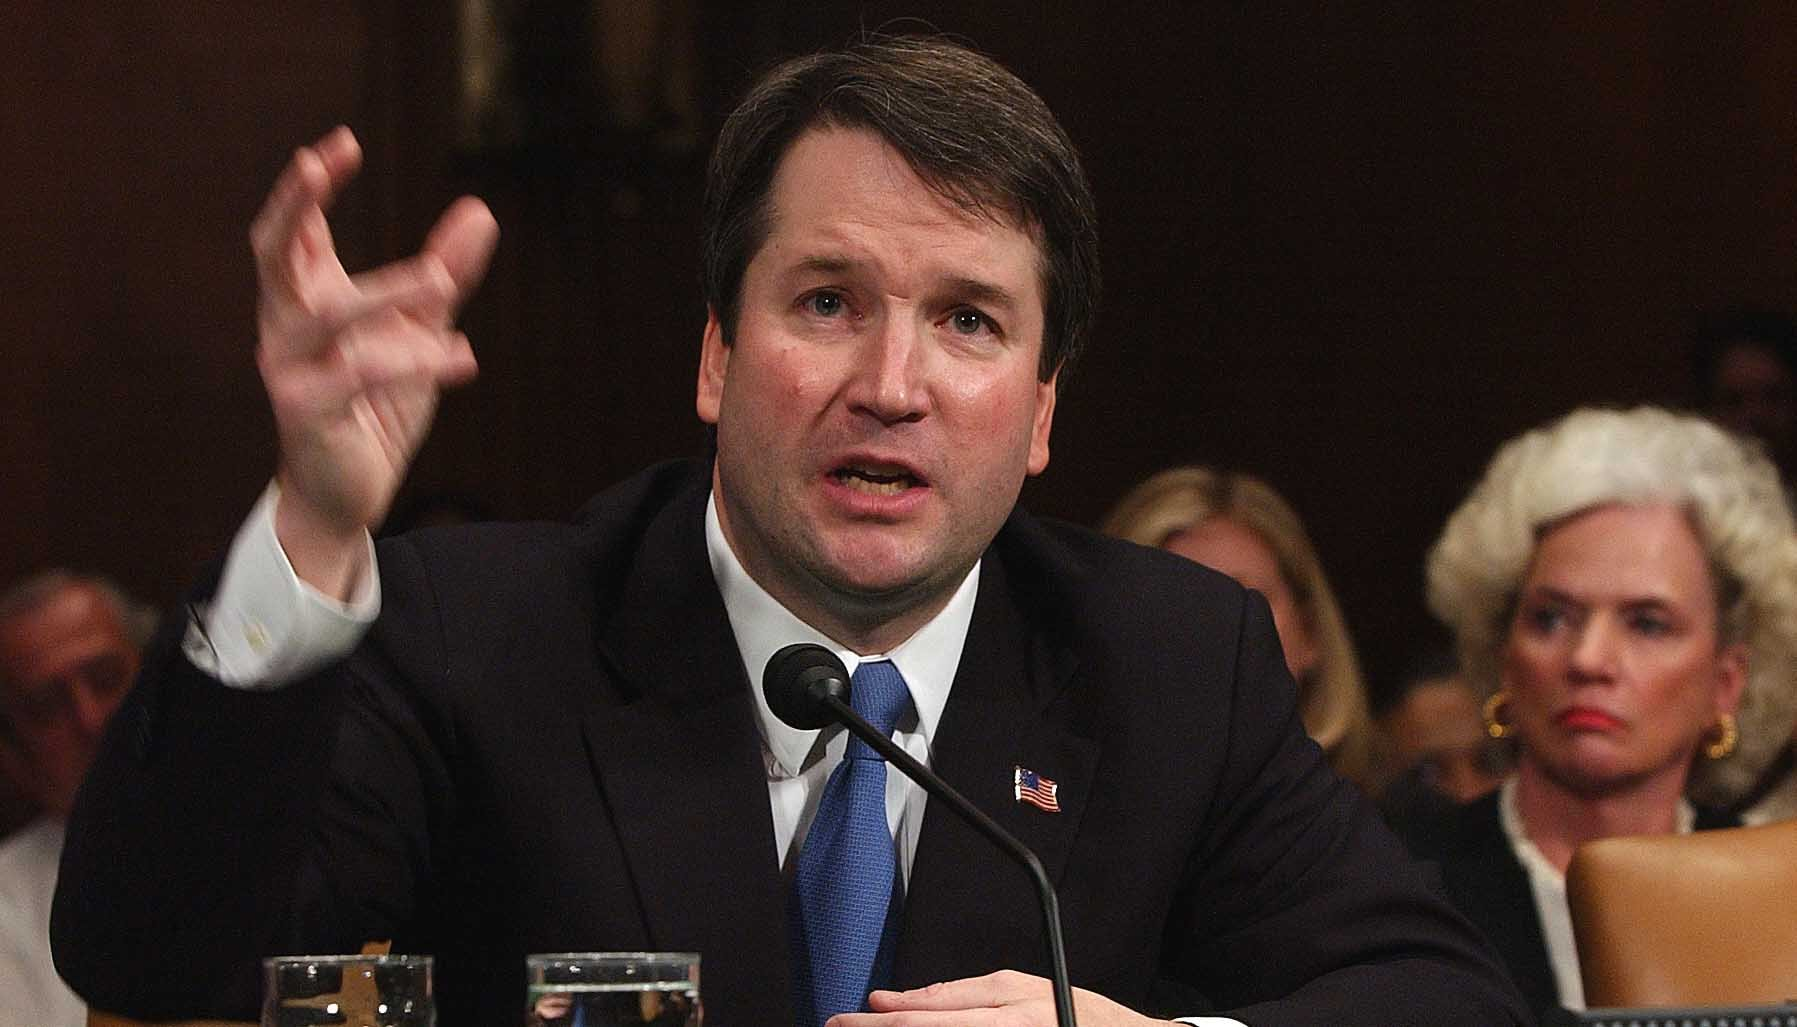 Brett Kavanaugh's views of presidential power drawing questions